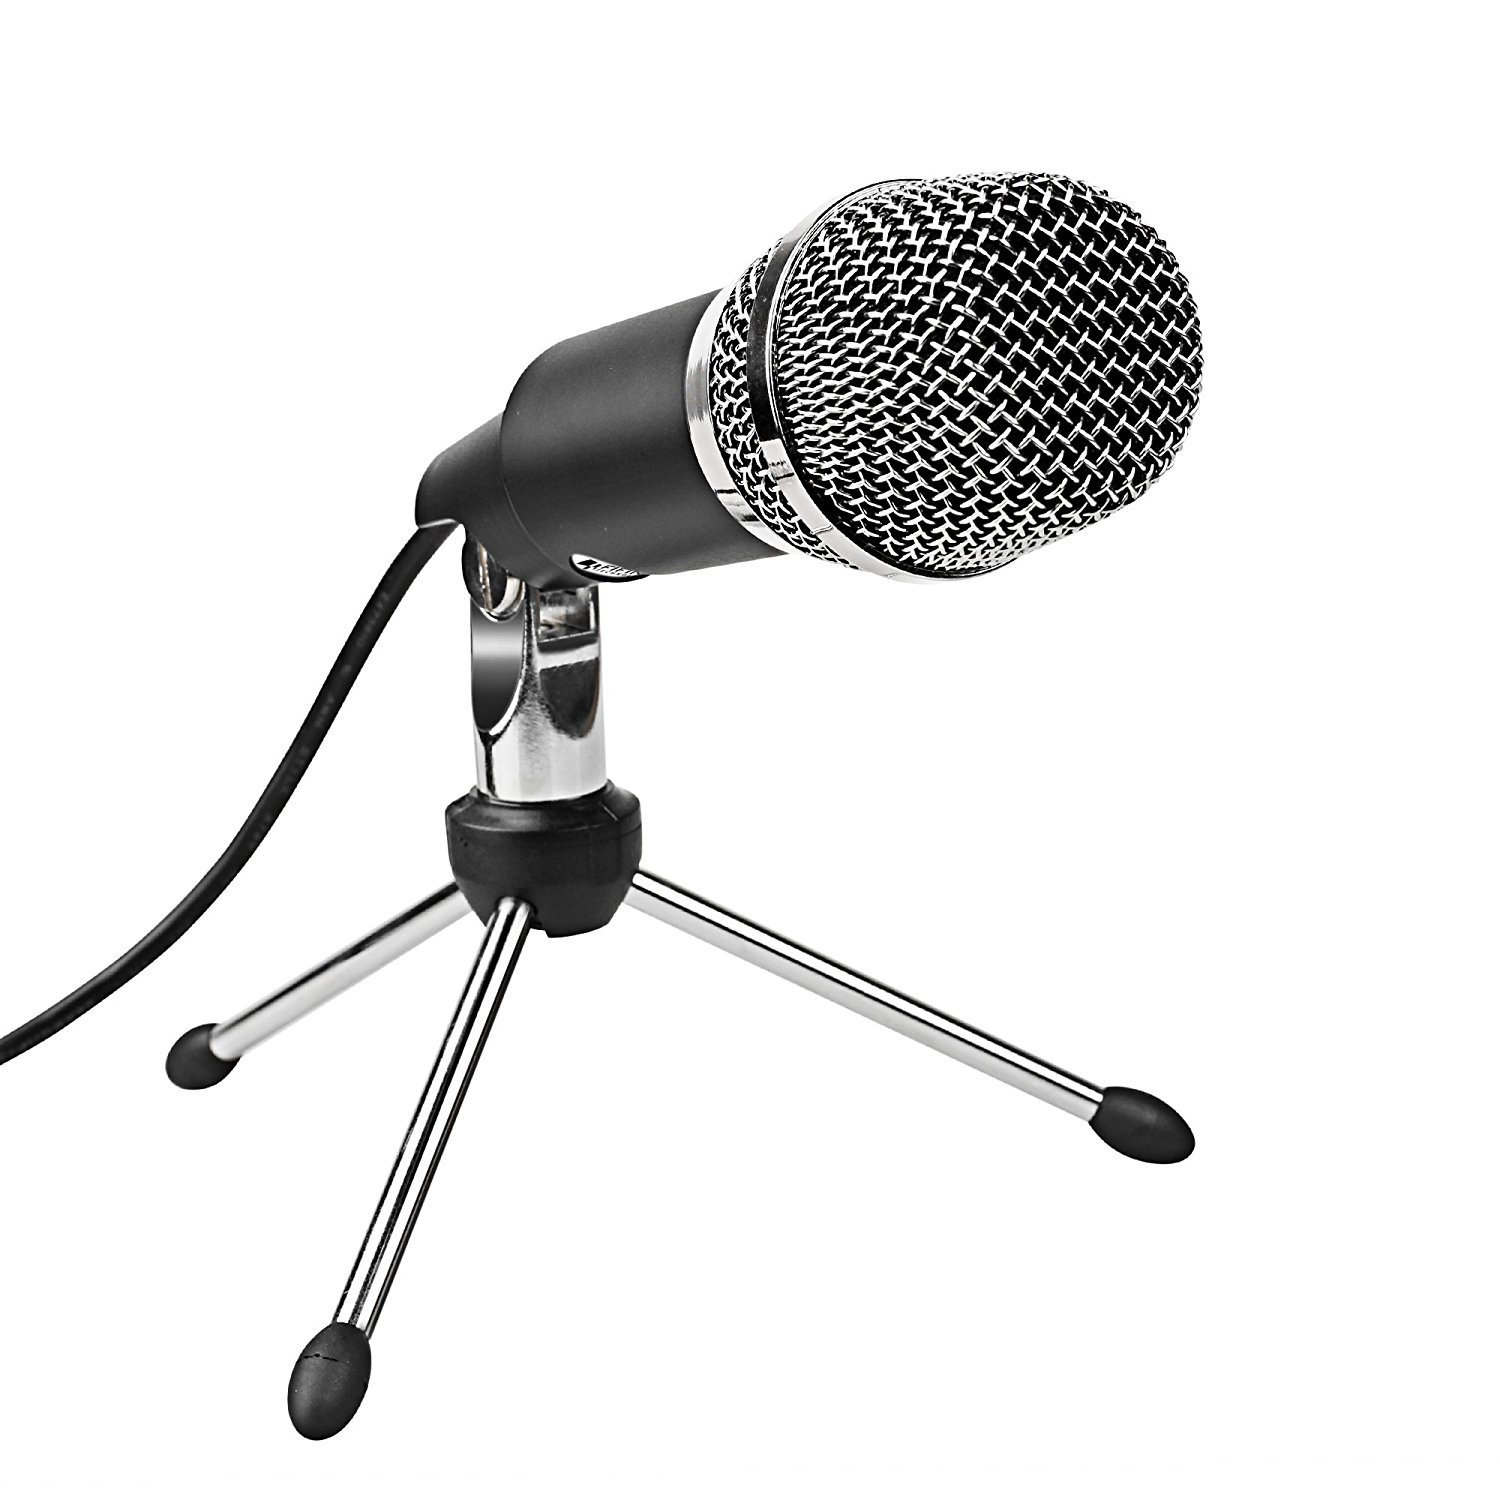 PC microphone,Fifine Plug &Play Home Studio Cardioid USB Condenser  Microphone for Skype, Recordings for YouTube, Google Voice Search,